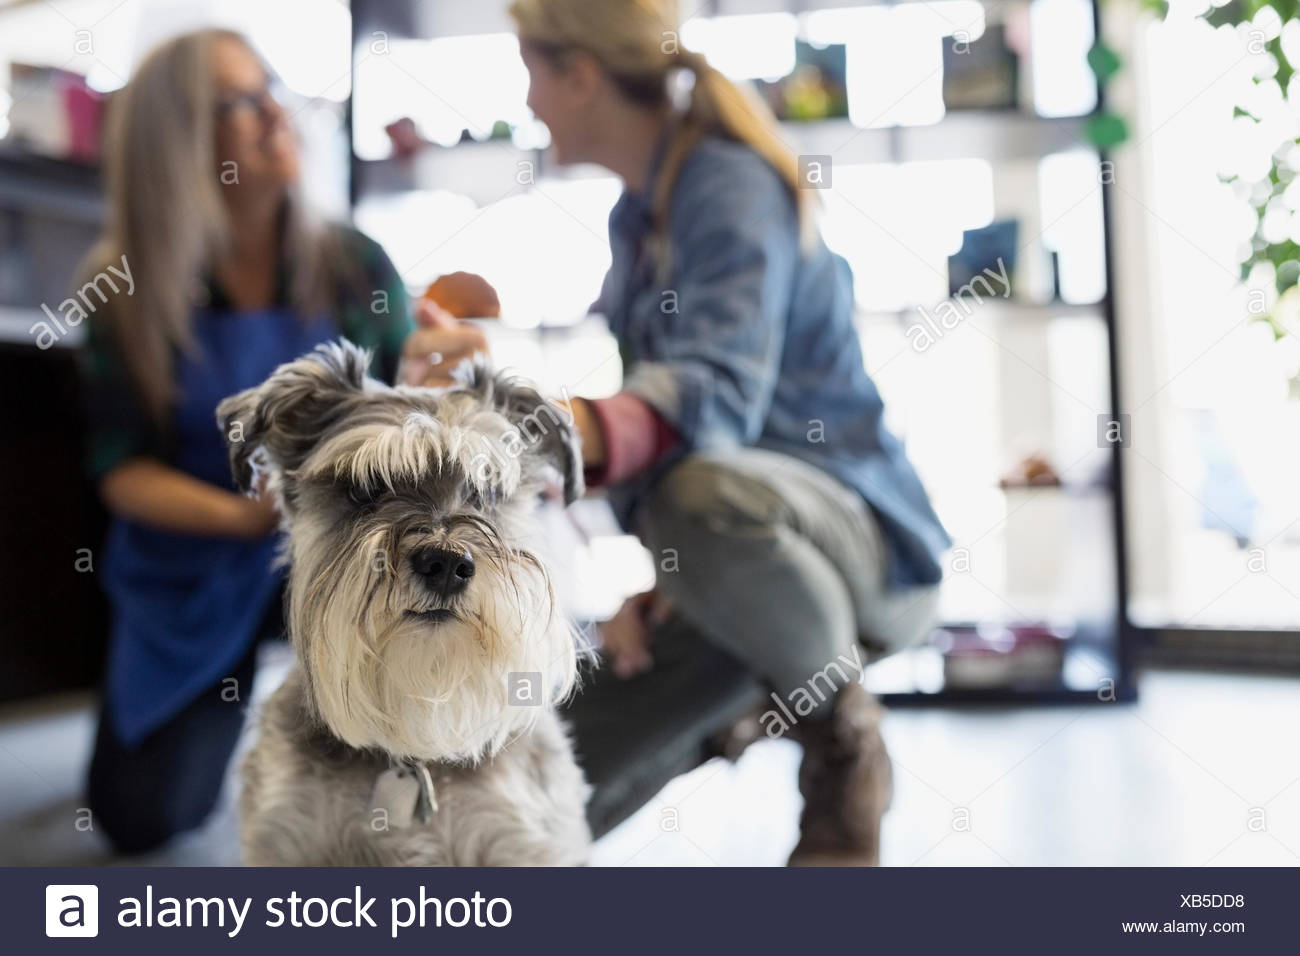 Woman and dog daycare owner talking behind schnauzer - Stock Image